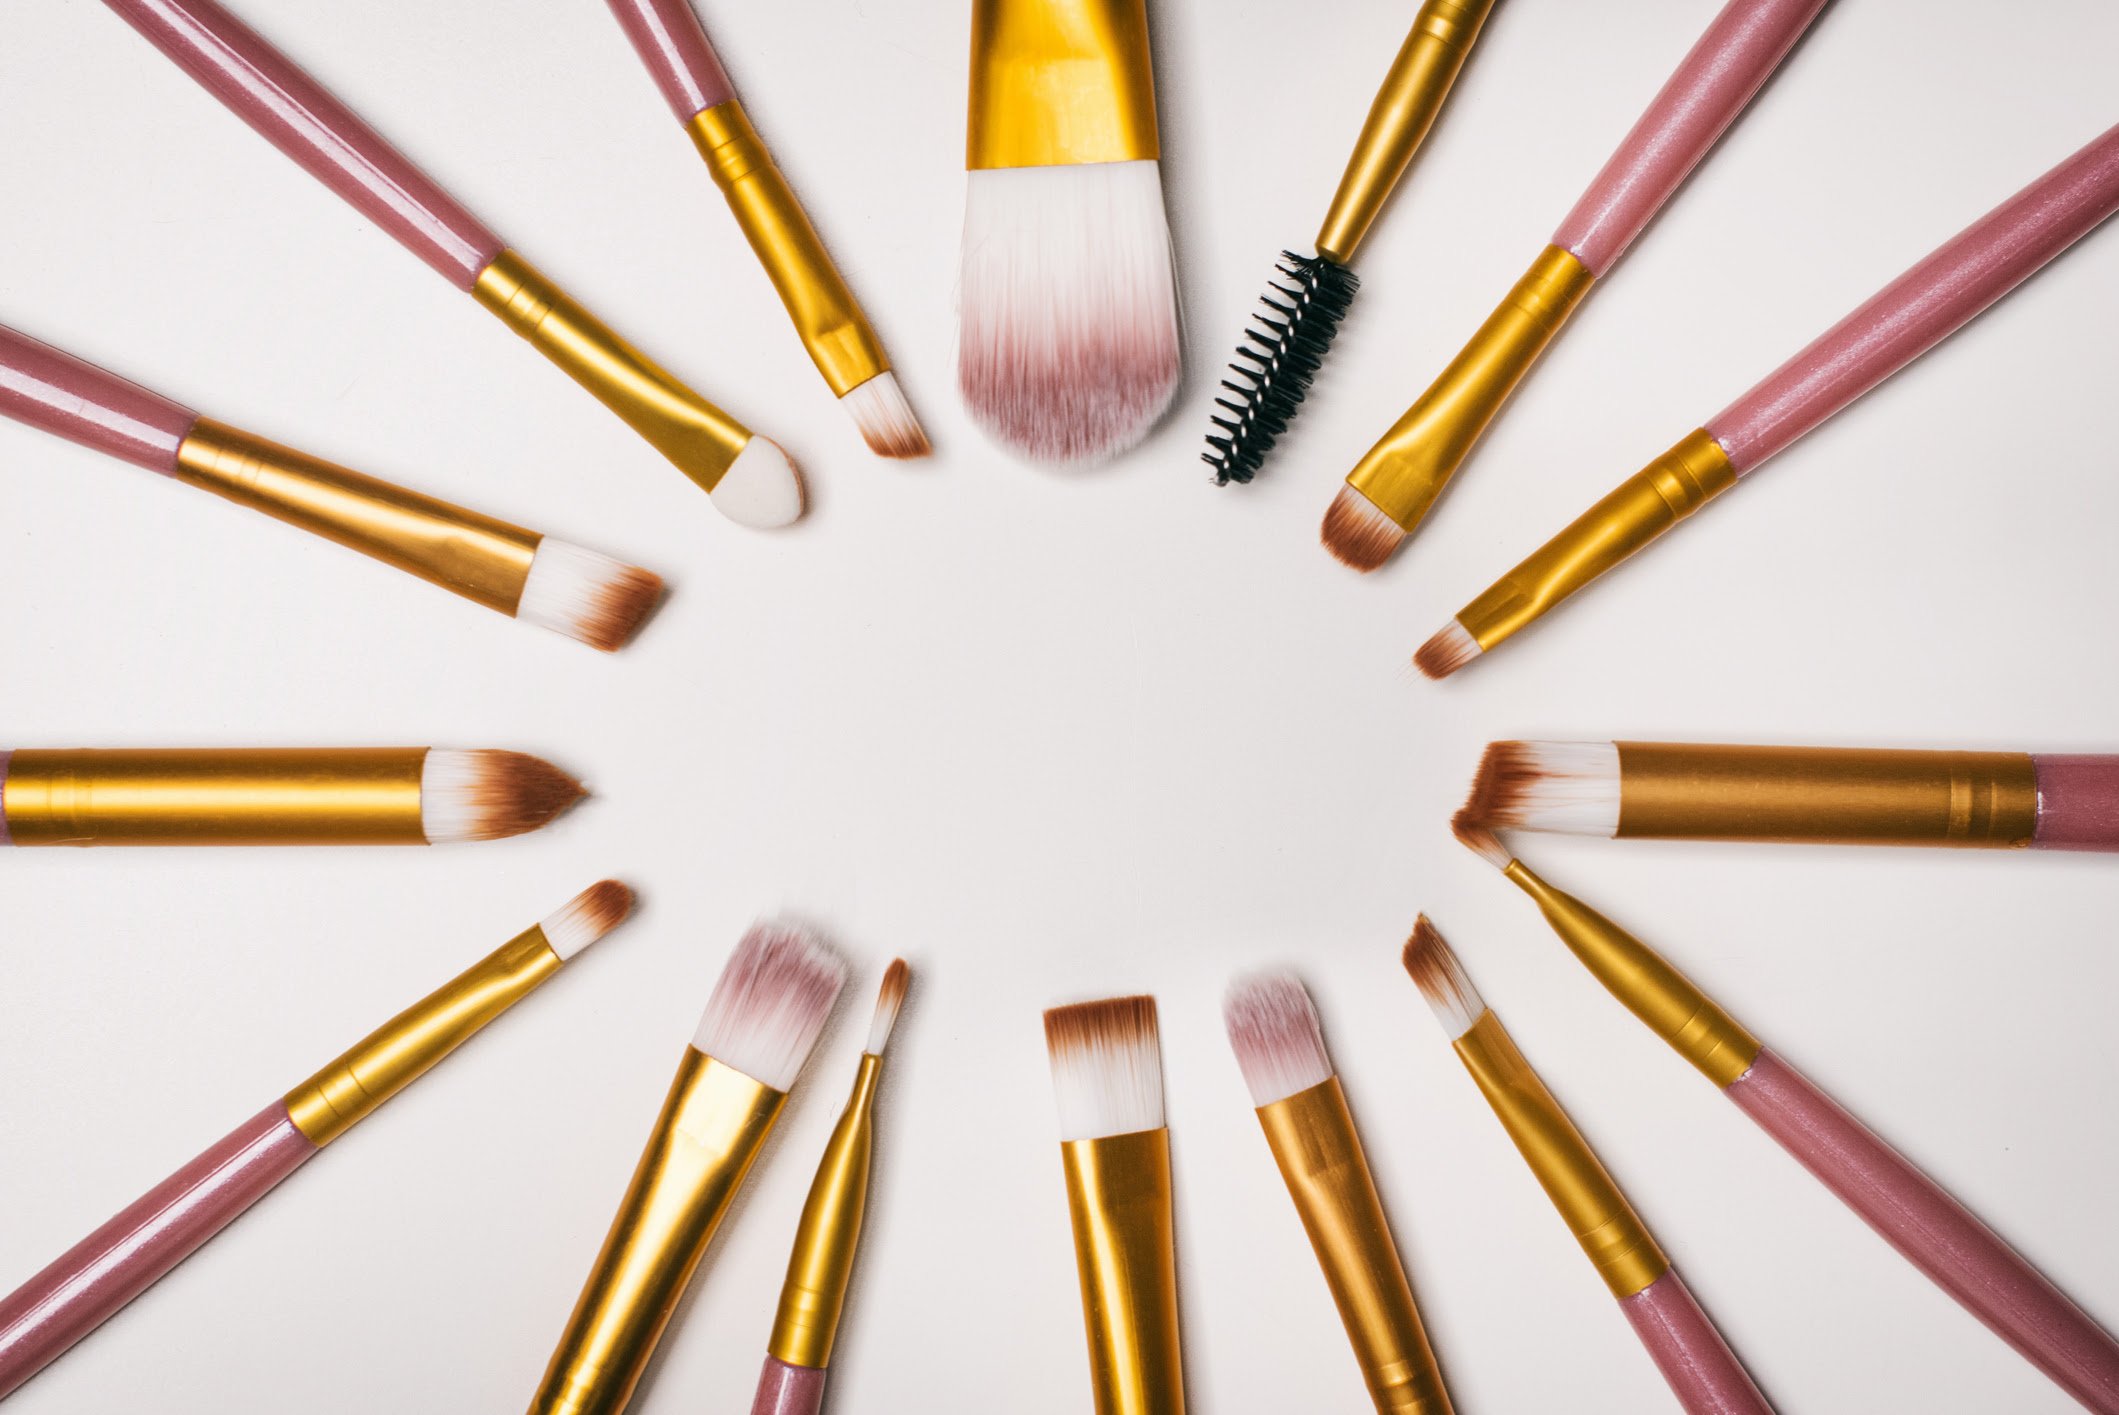 Cheap Makeup Brushes: 7 Best (& Affordable) Brushes | WHO ...